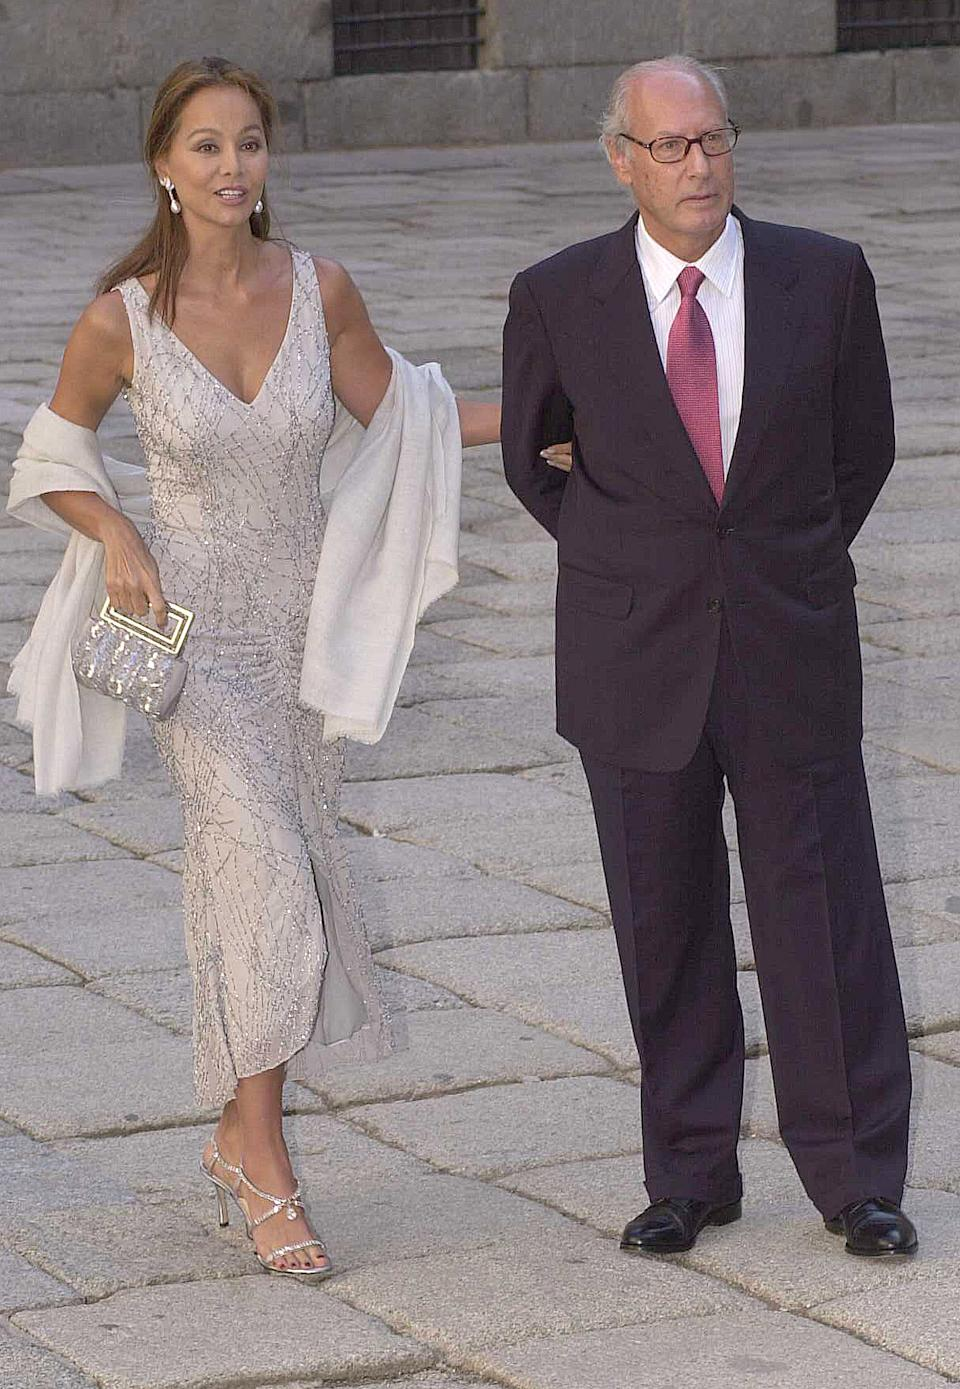 050902. Madrid. San Lorenzo de El Escorial. Spain THE SPANISH PRESIDENT´S DAUGTHER, ANA AZNAR BOTELLA, HAS MARRIED WITH ALEJANDRO AGAG ISABEL PREYSLER AND HER HUSBAND MIGUEL BOYER 050902. Madrid. San Lorenzo de El Escorial. Boda de Alejandro Agag y Ana Aznar Botella Isabel Preysler y Miguel Boyer 600  (Photo by Fernando Camino/Cover/Getty Images)